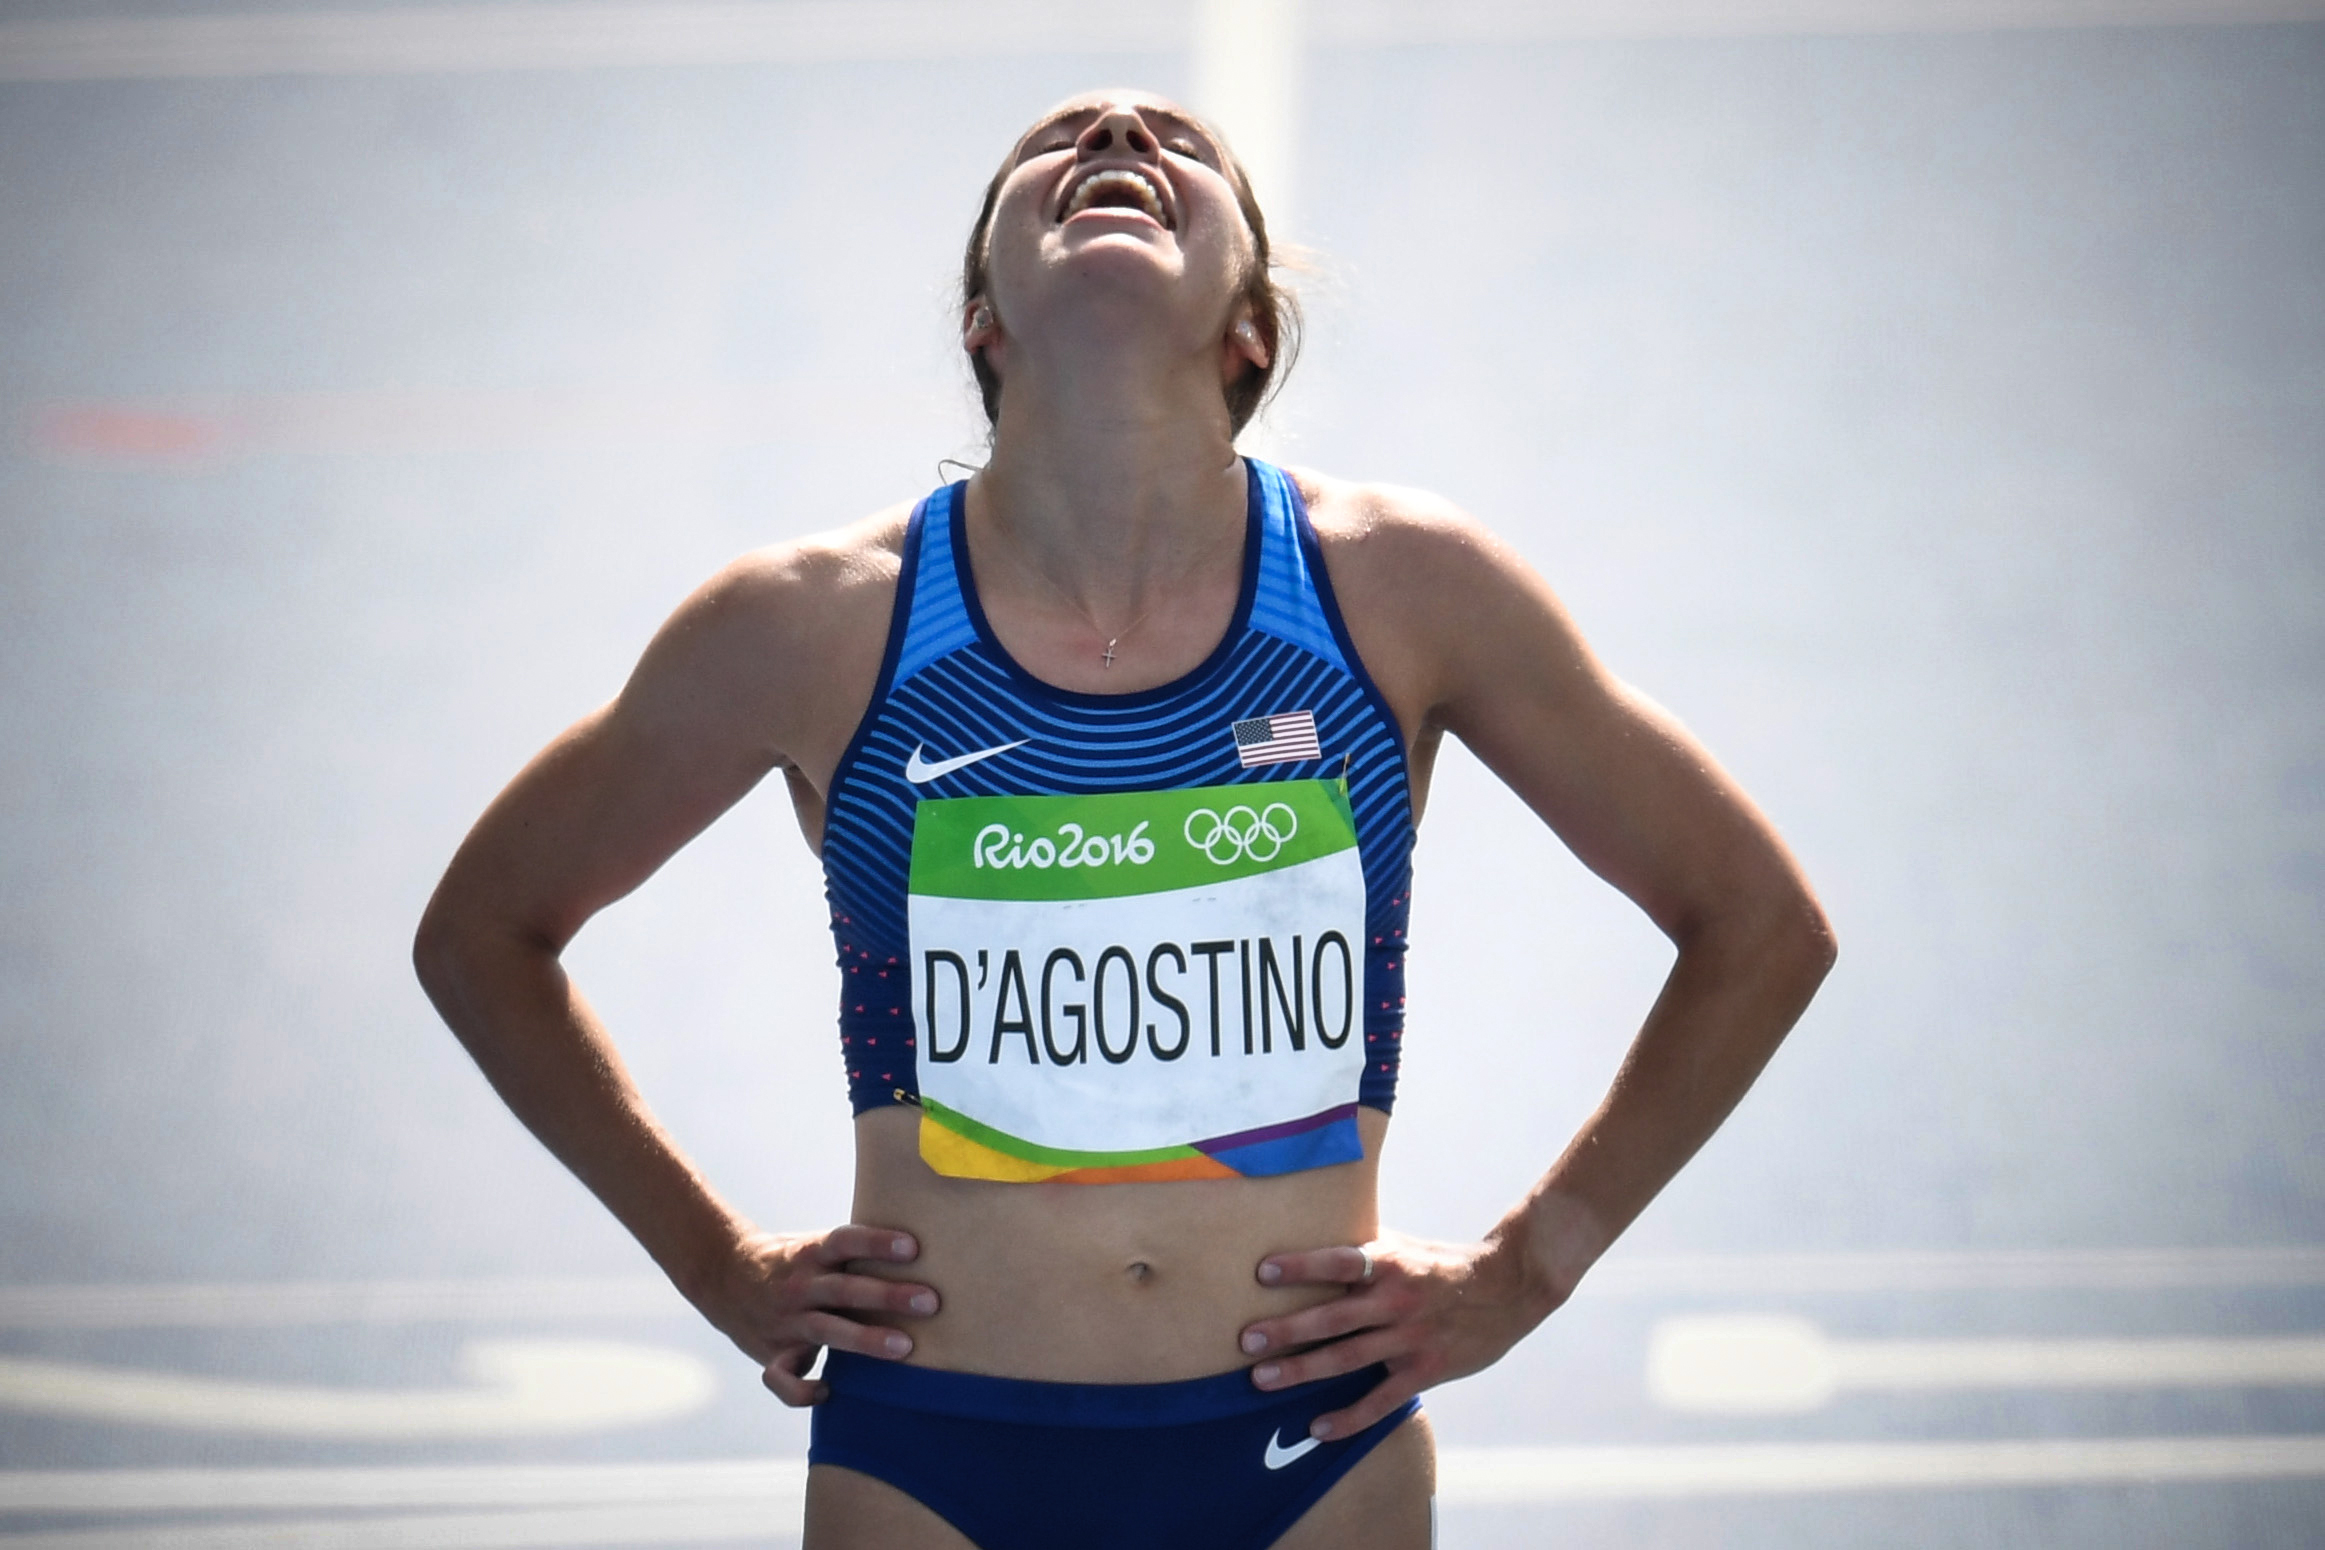 USA's Abbey D'agostino reacts after competing in the Women's 5000m Round 1 during the athletics event at the Rio 2016 Olympic Games at the Olympic Stadium in Rio de Janeiro on August 16, 2016.   / AFP PHOTO / PEDRO UGARTE